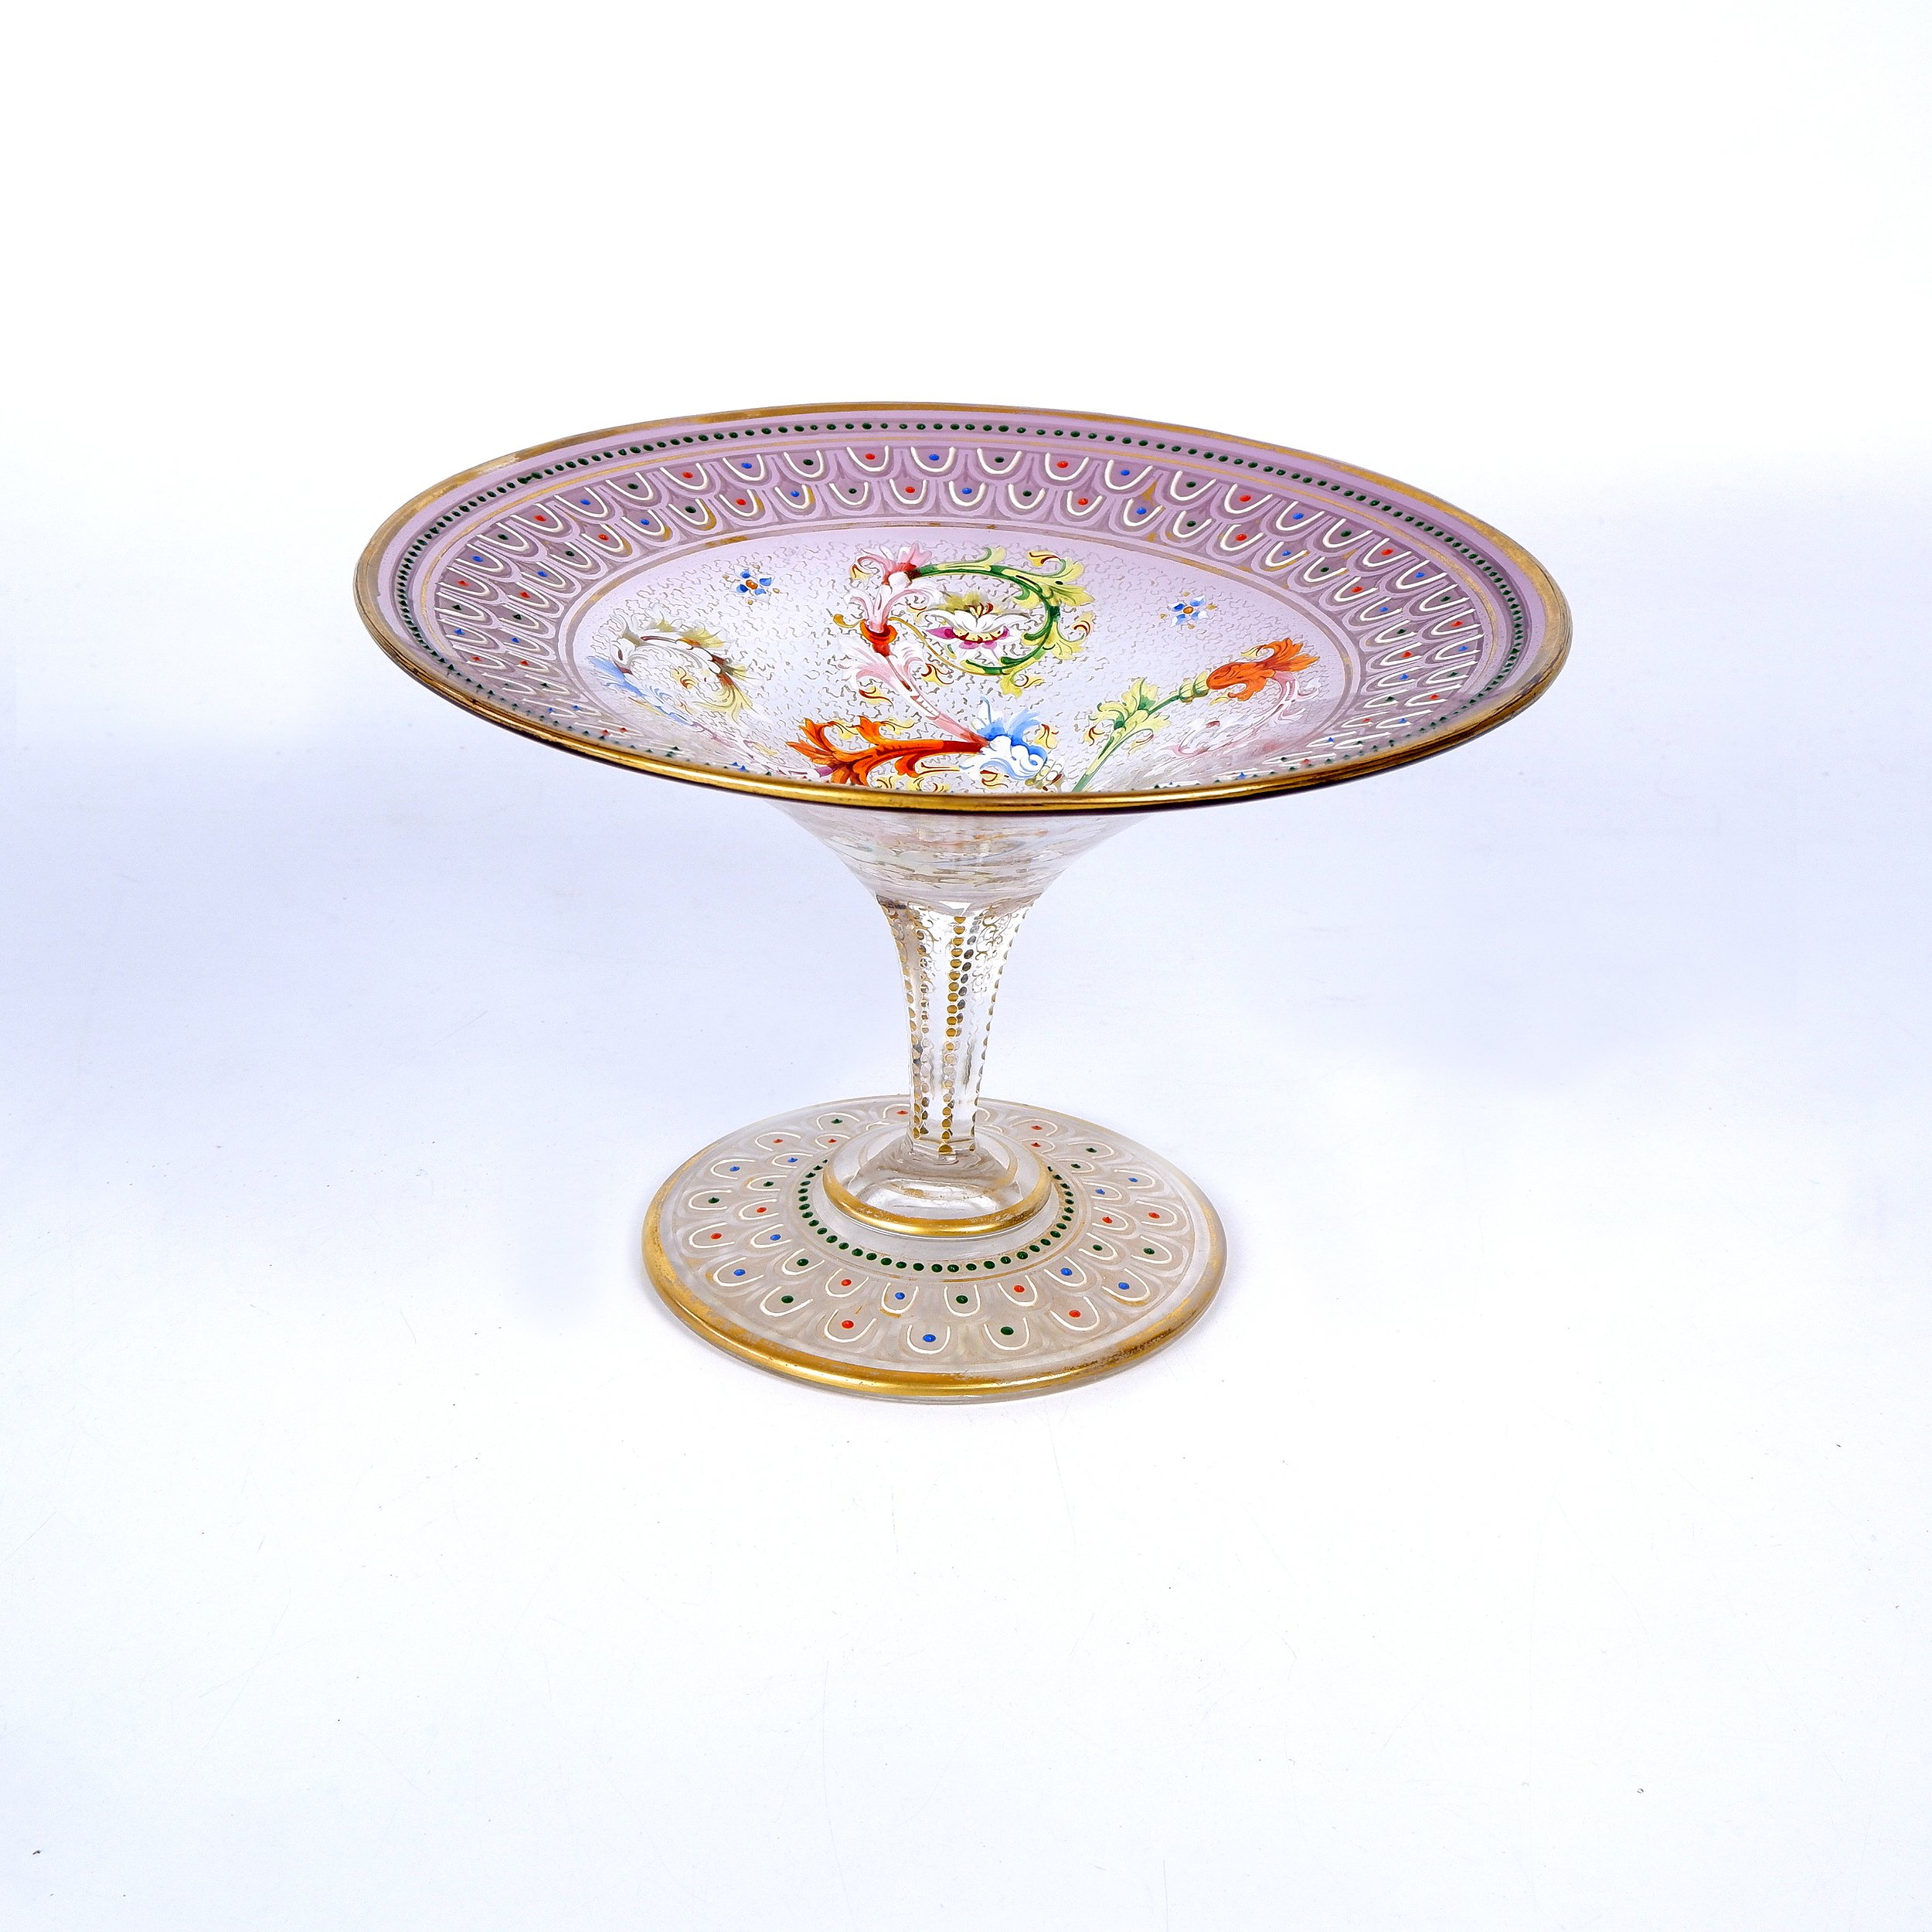 'Antique European Hand Blown, Gilt and Enamel Crystal Comport, Late 19th Century'